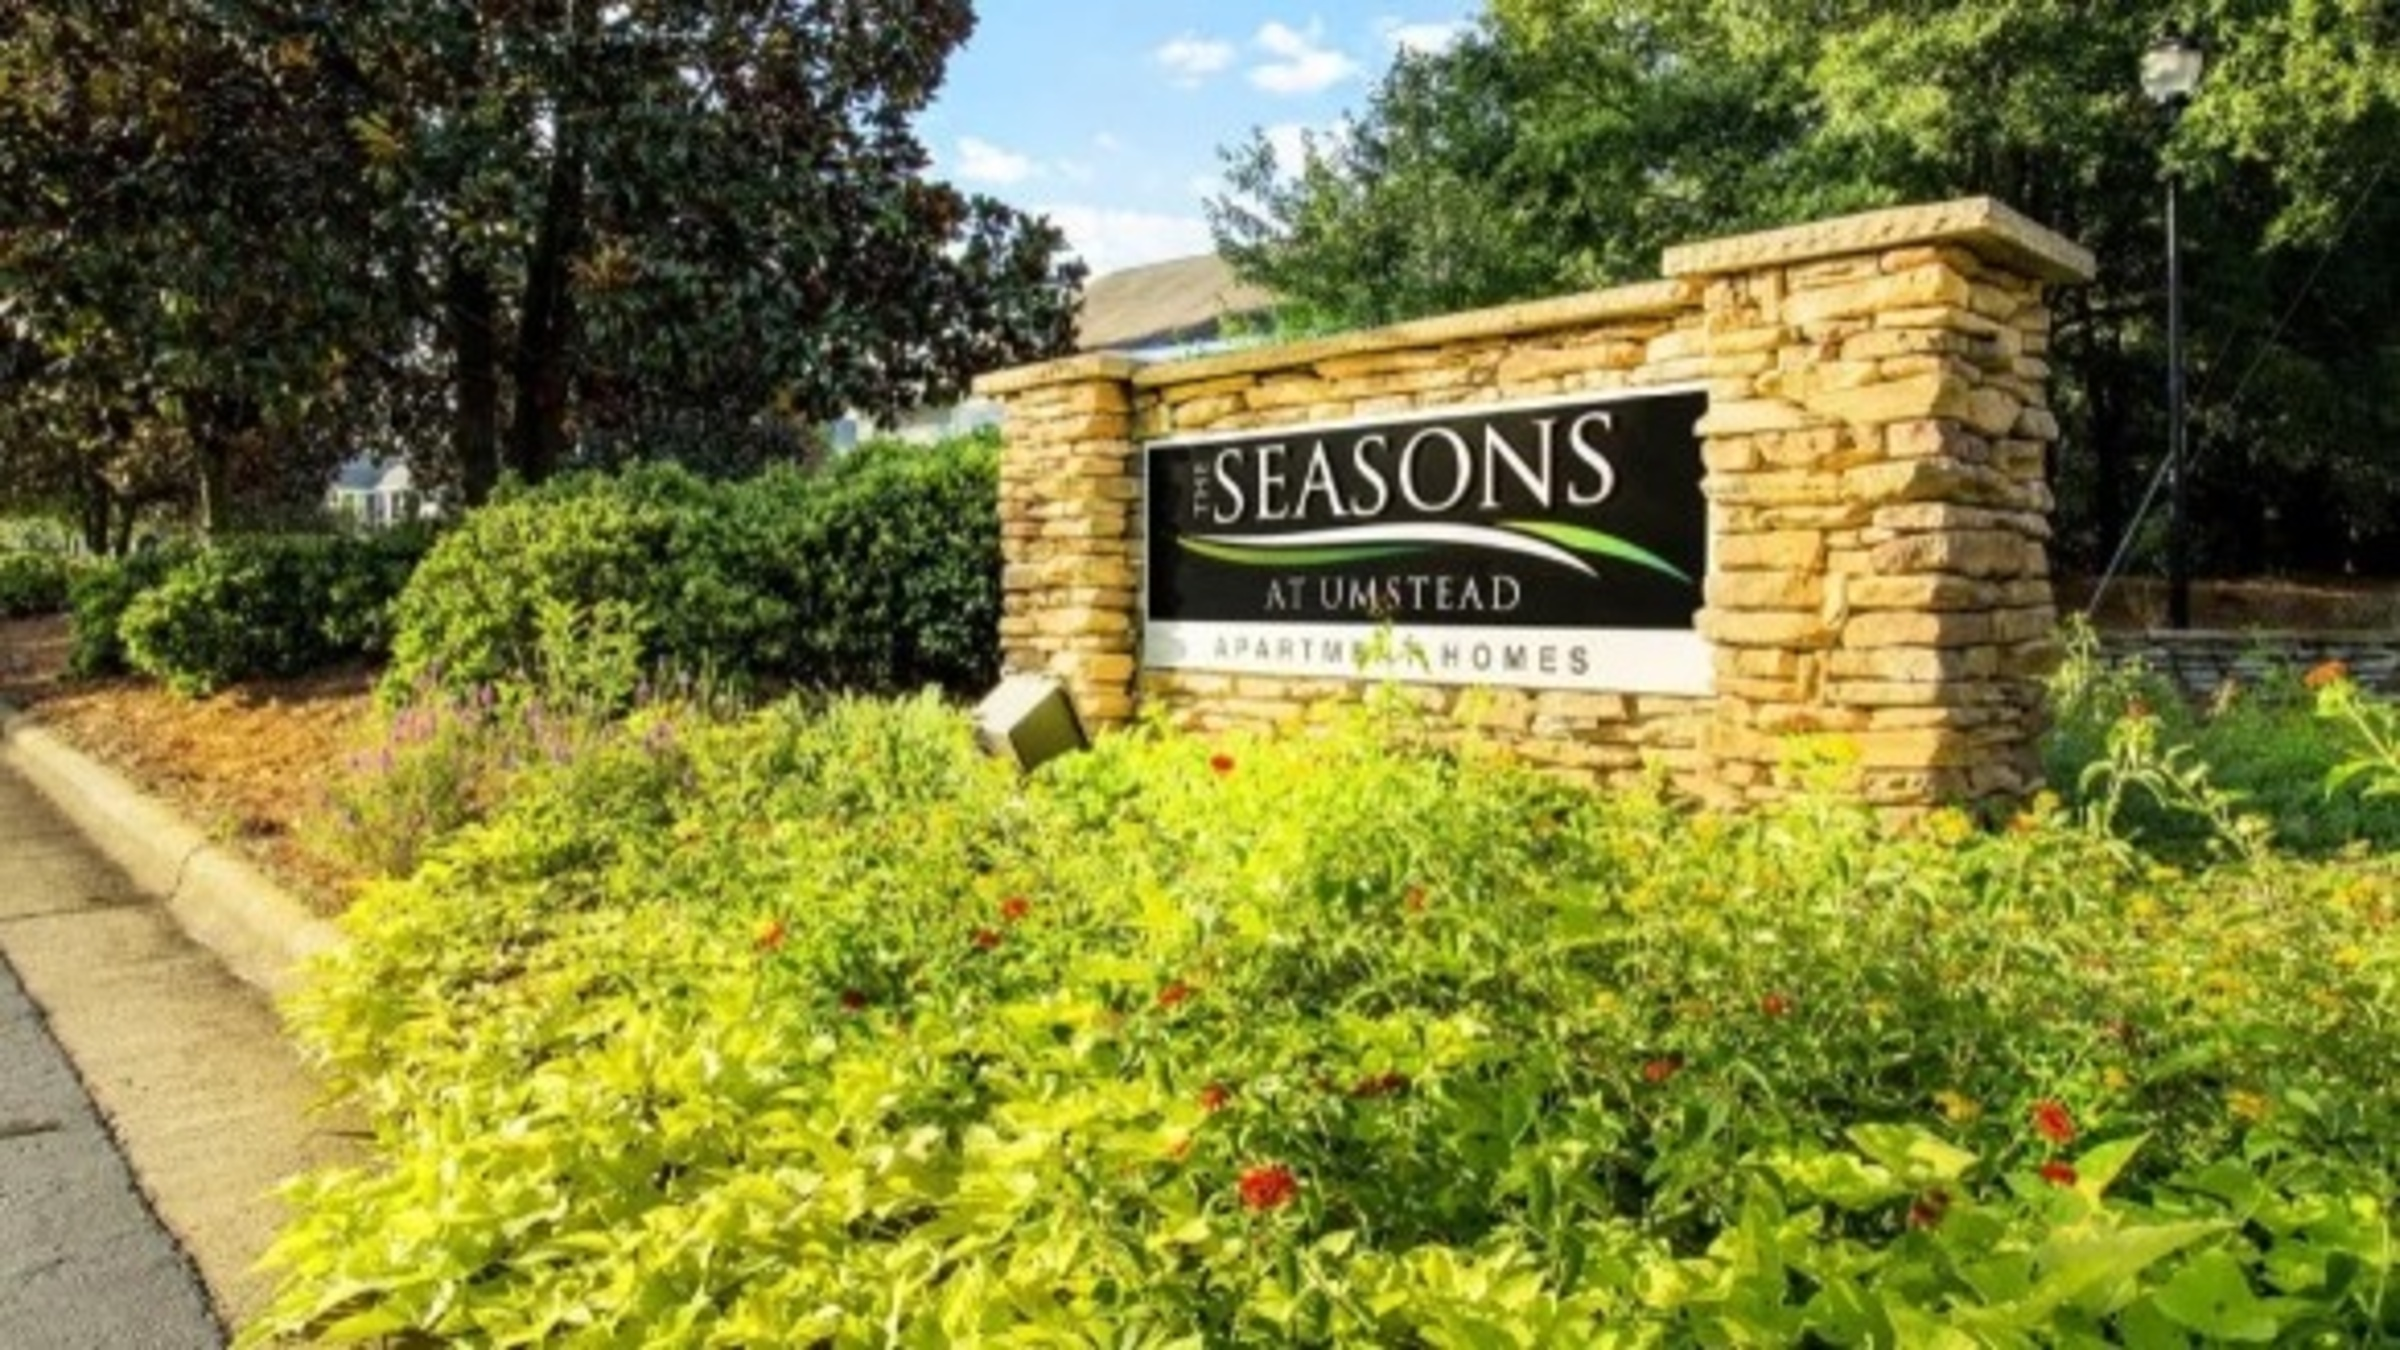 The Seasons at Umstead